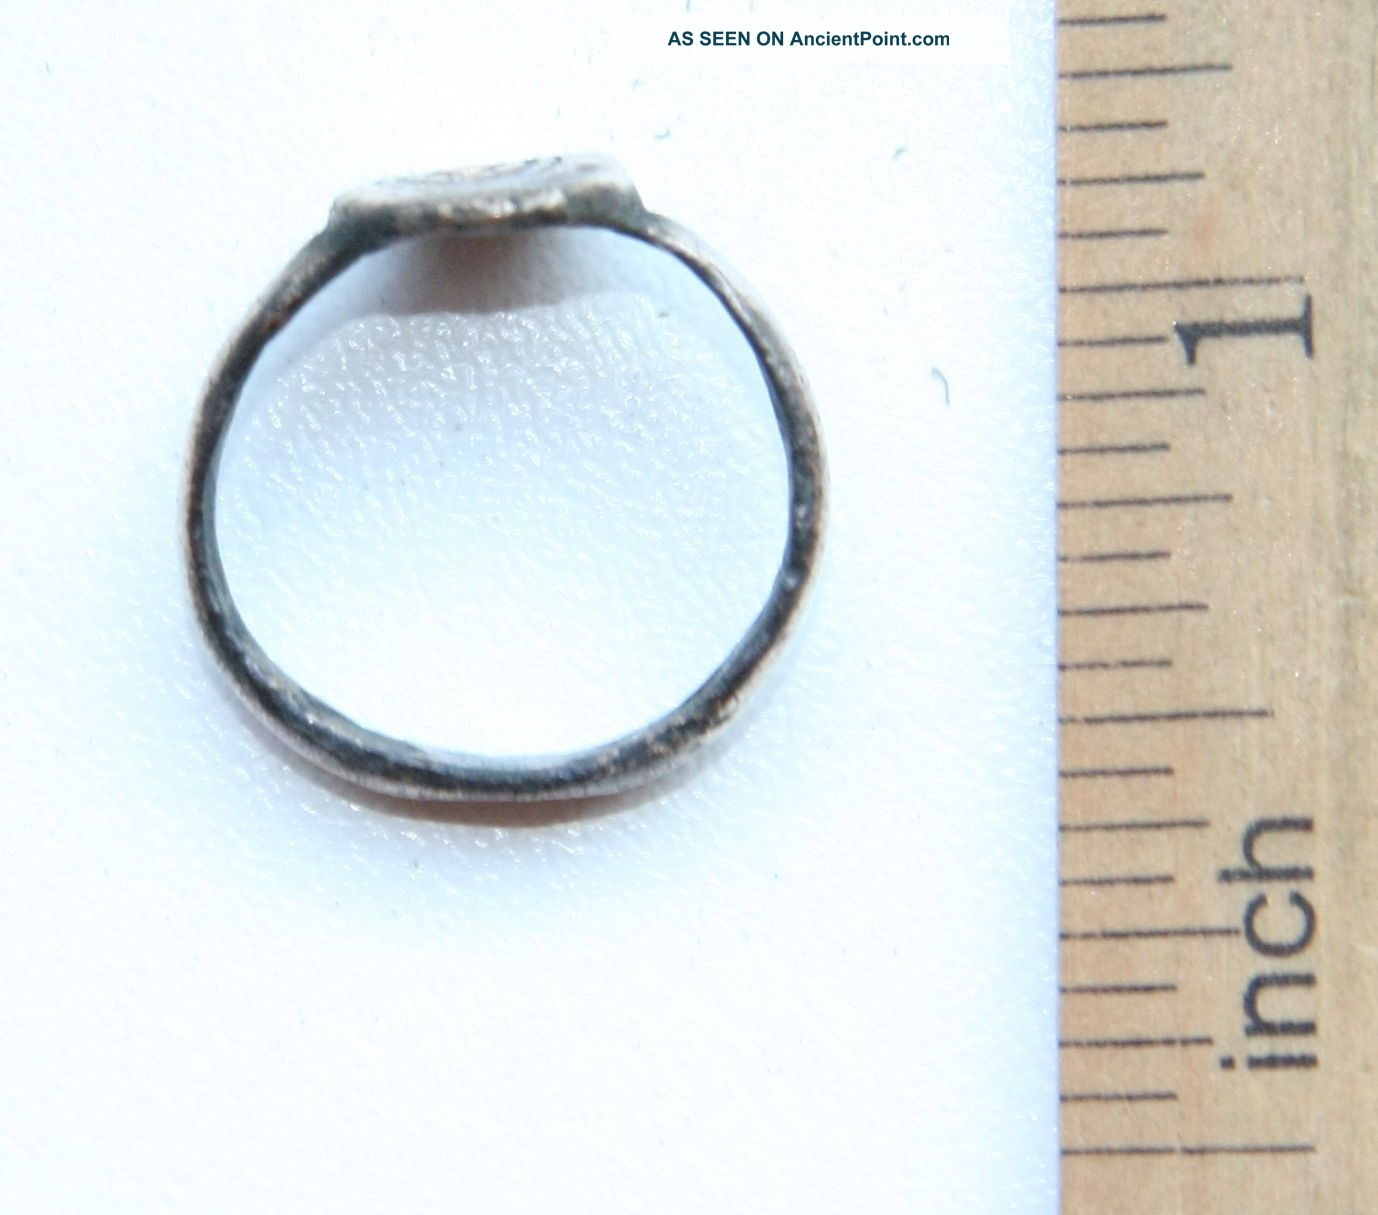 Antique Bronze Finger Ring With Image (jll02) Byzantine photo